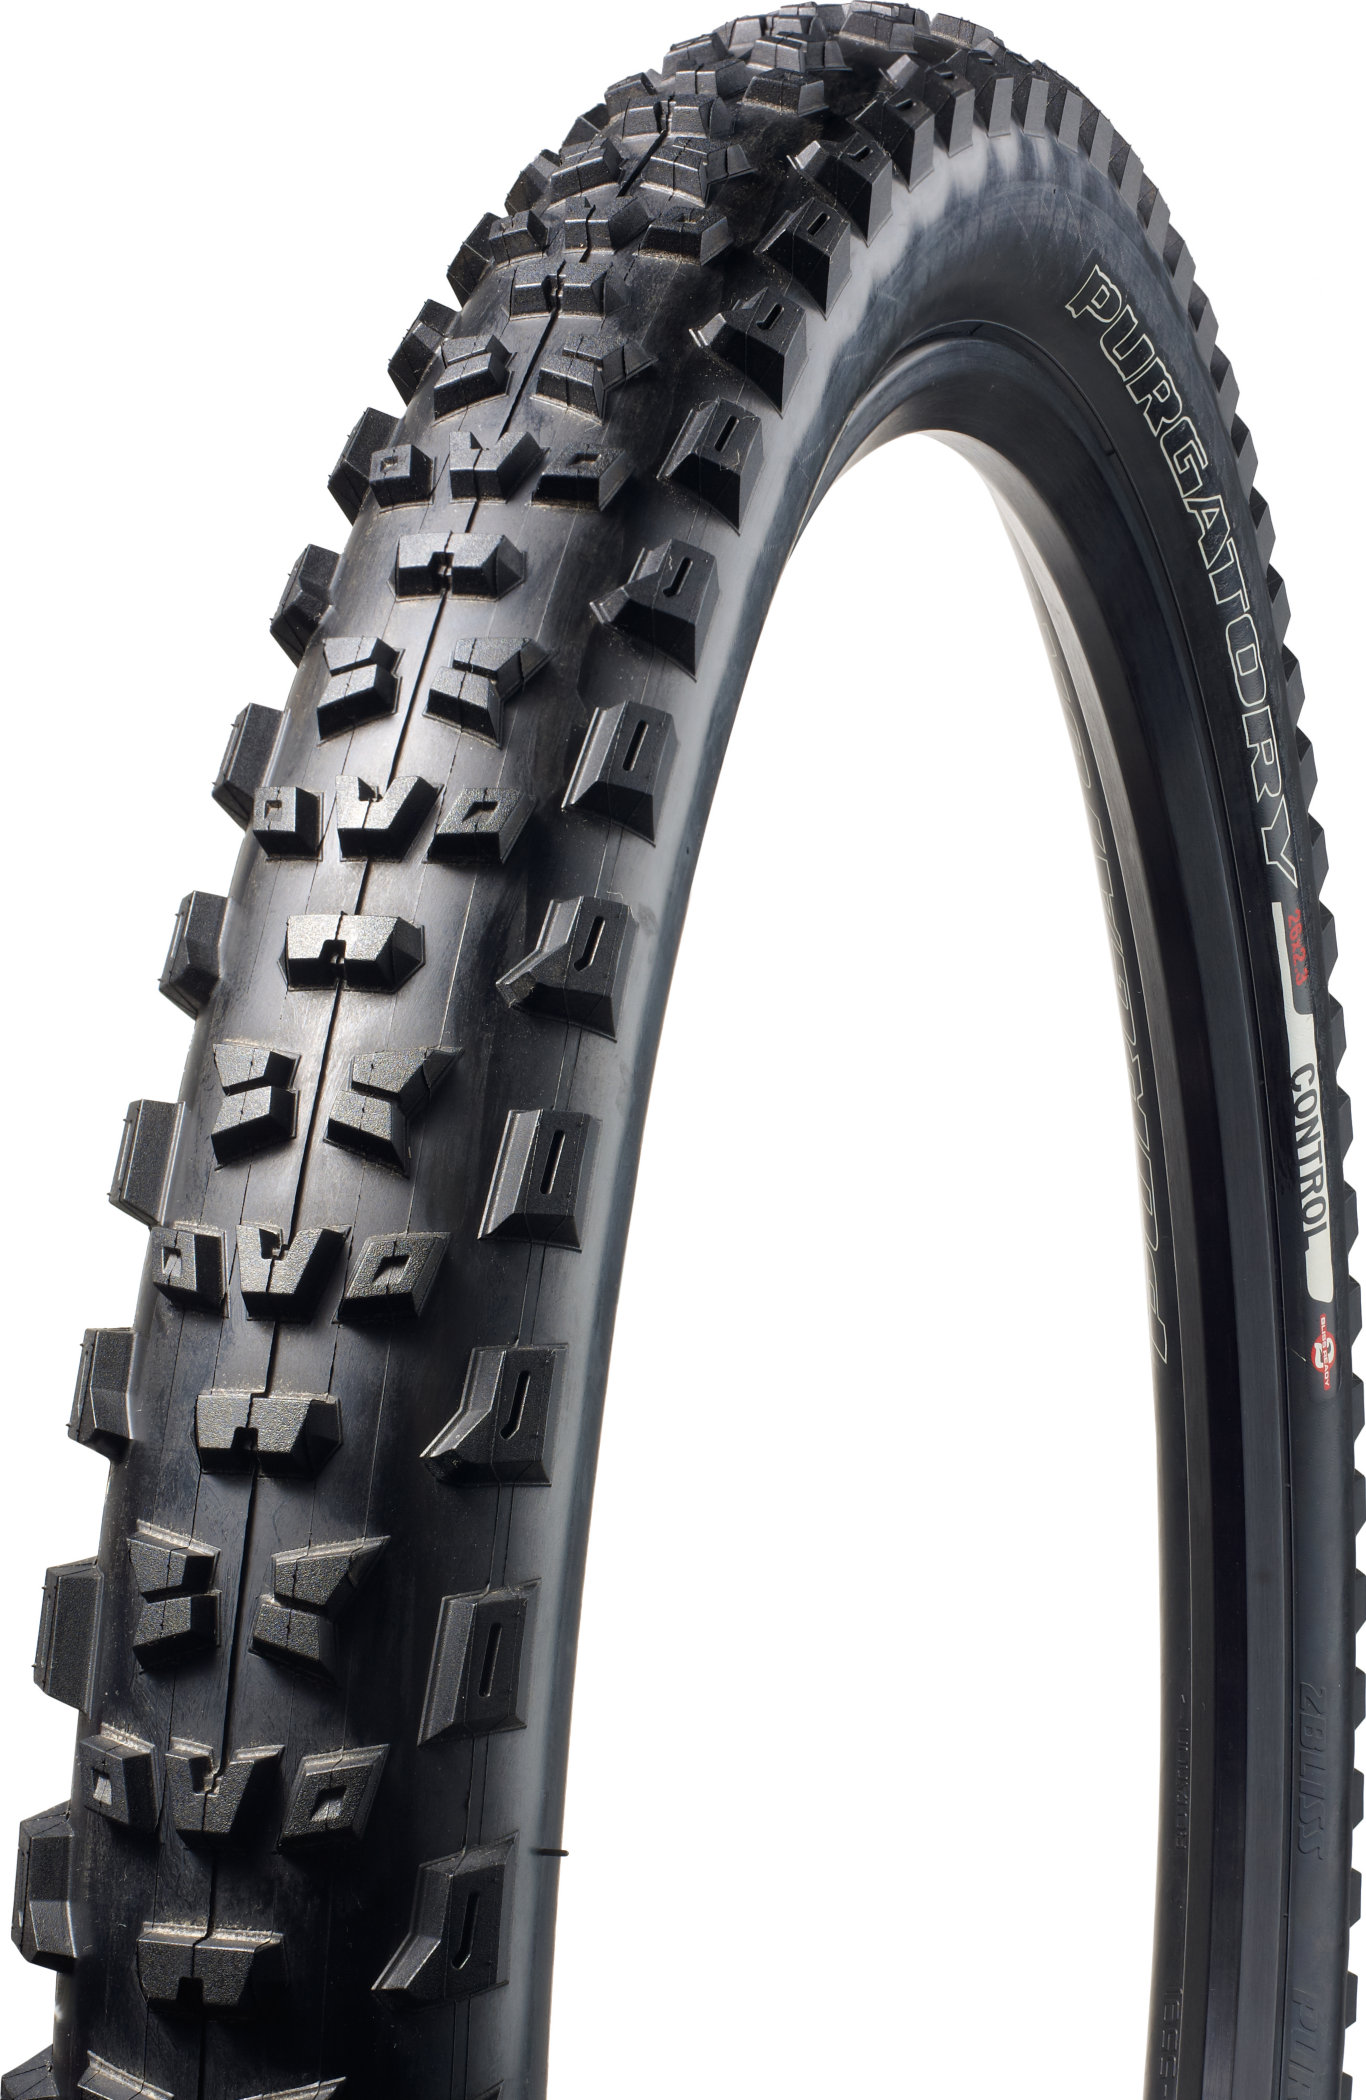 SPECIALIZED PURGATORY GRID 2BR TIRE 29X2.3 - SPECIALIZED PURGATORY GRID 2BR TIRE 29X2.3